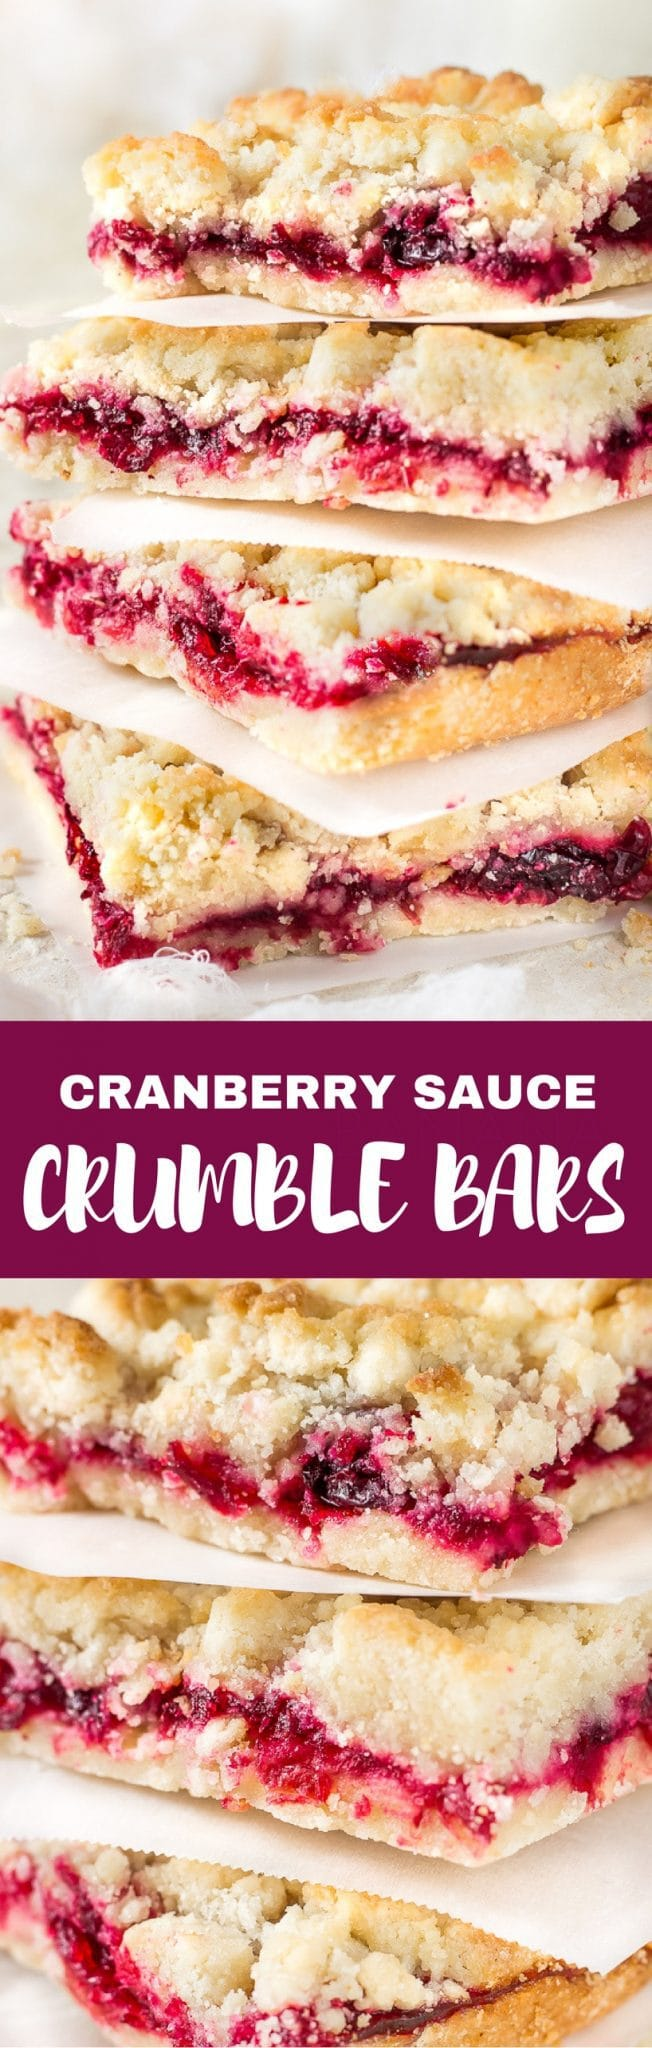 Luscious, buttery, sweet and tart glossy cranberry sauce crumble bars are made with a sweet crumble dough that doubles as a topping. A classic and super easy gorgeous and delicious holiday dessert. You won't be able to eat just one!